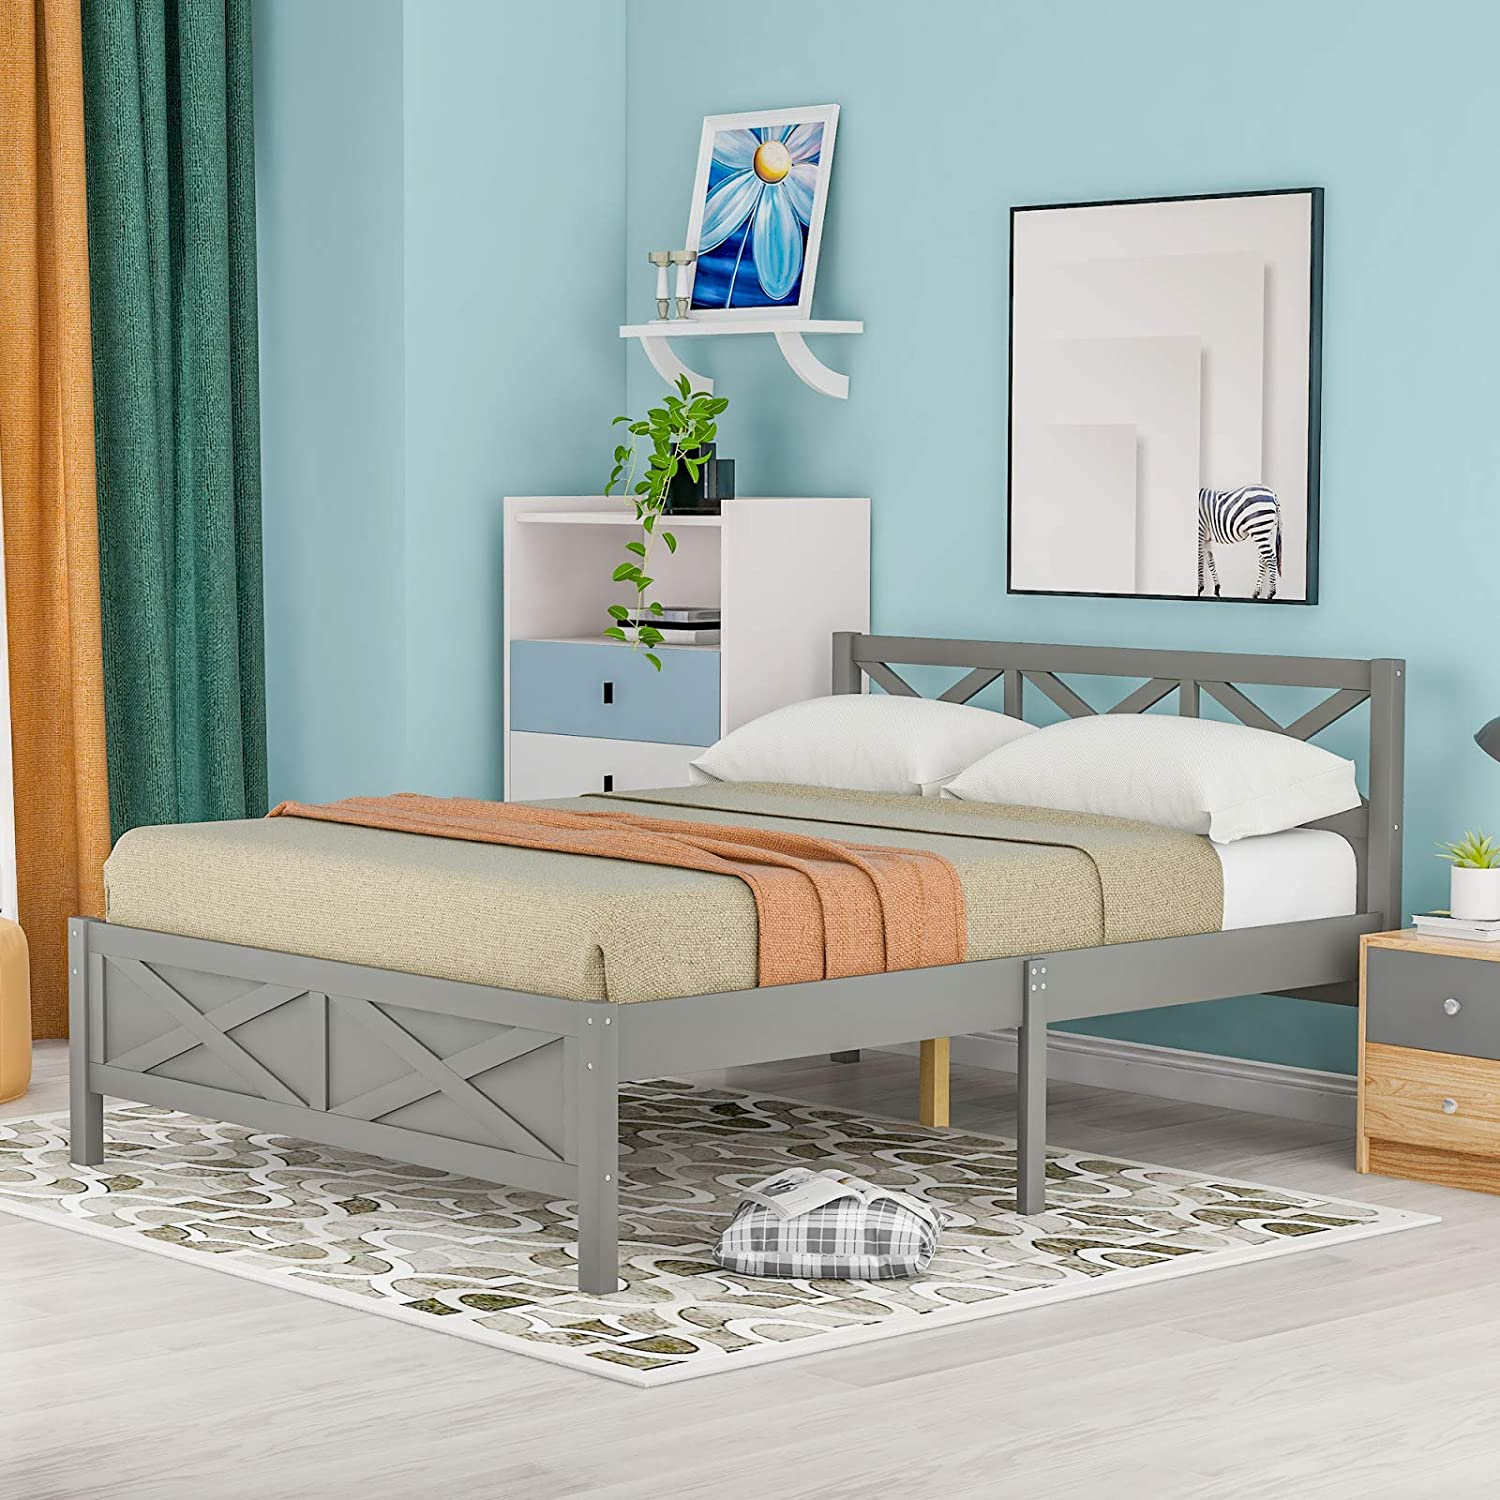 cheap Lazyspace Queen Size Wooden Platform Jacksonville Mall Bed Legs with Support Extra